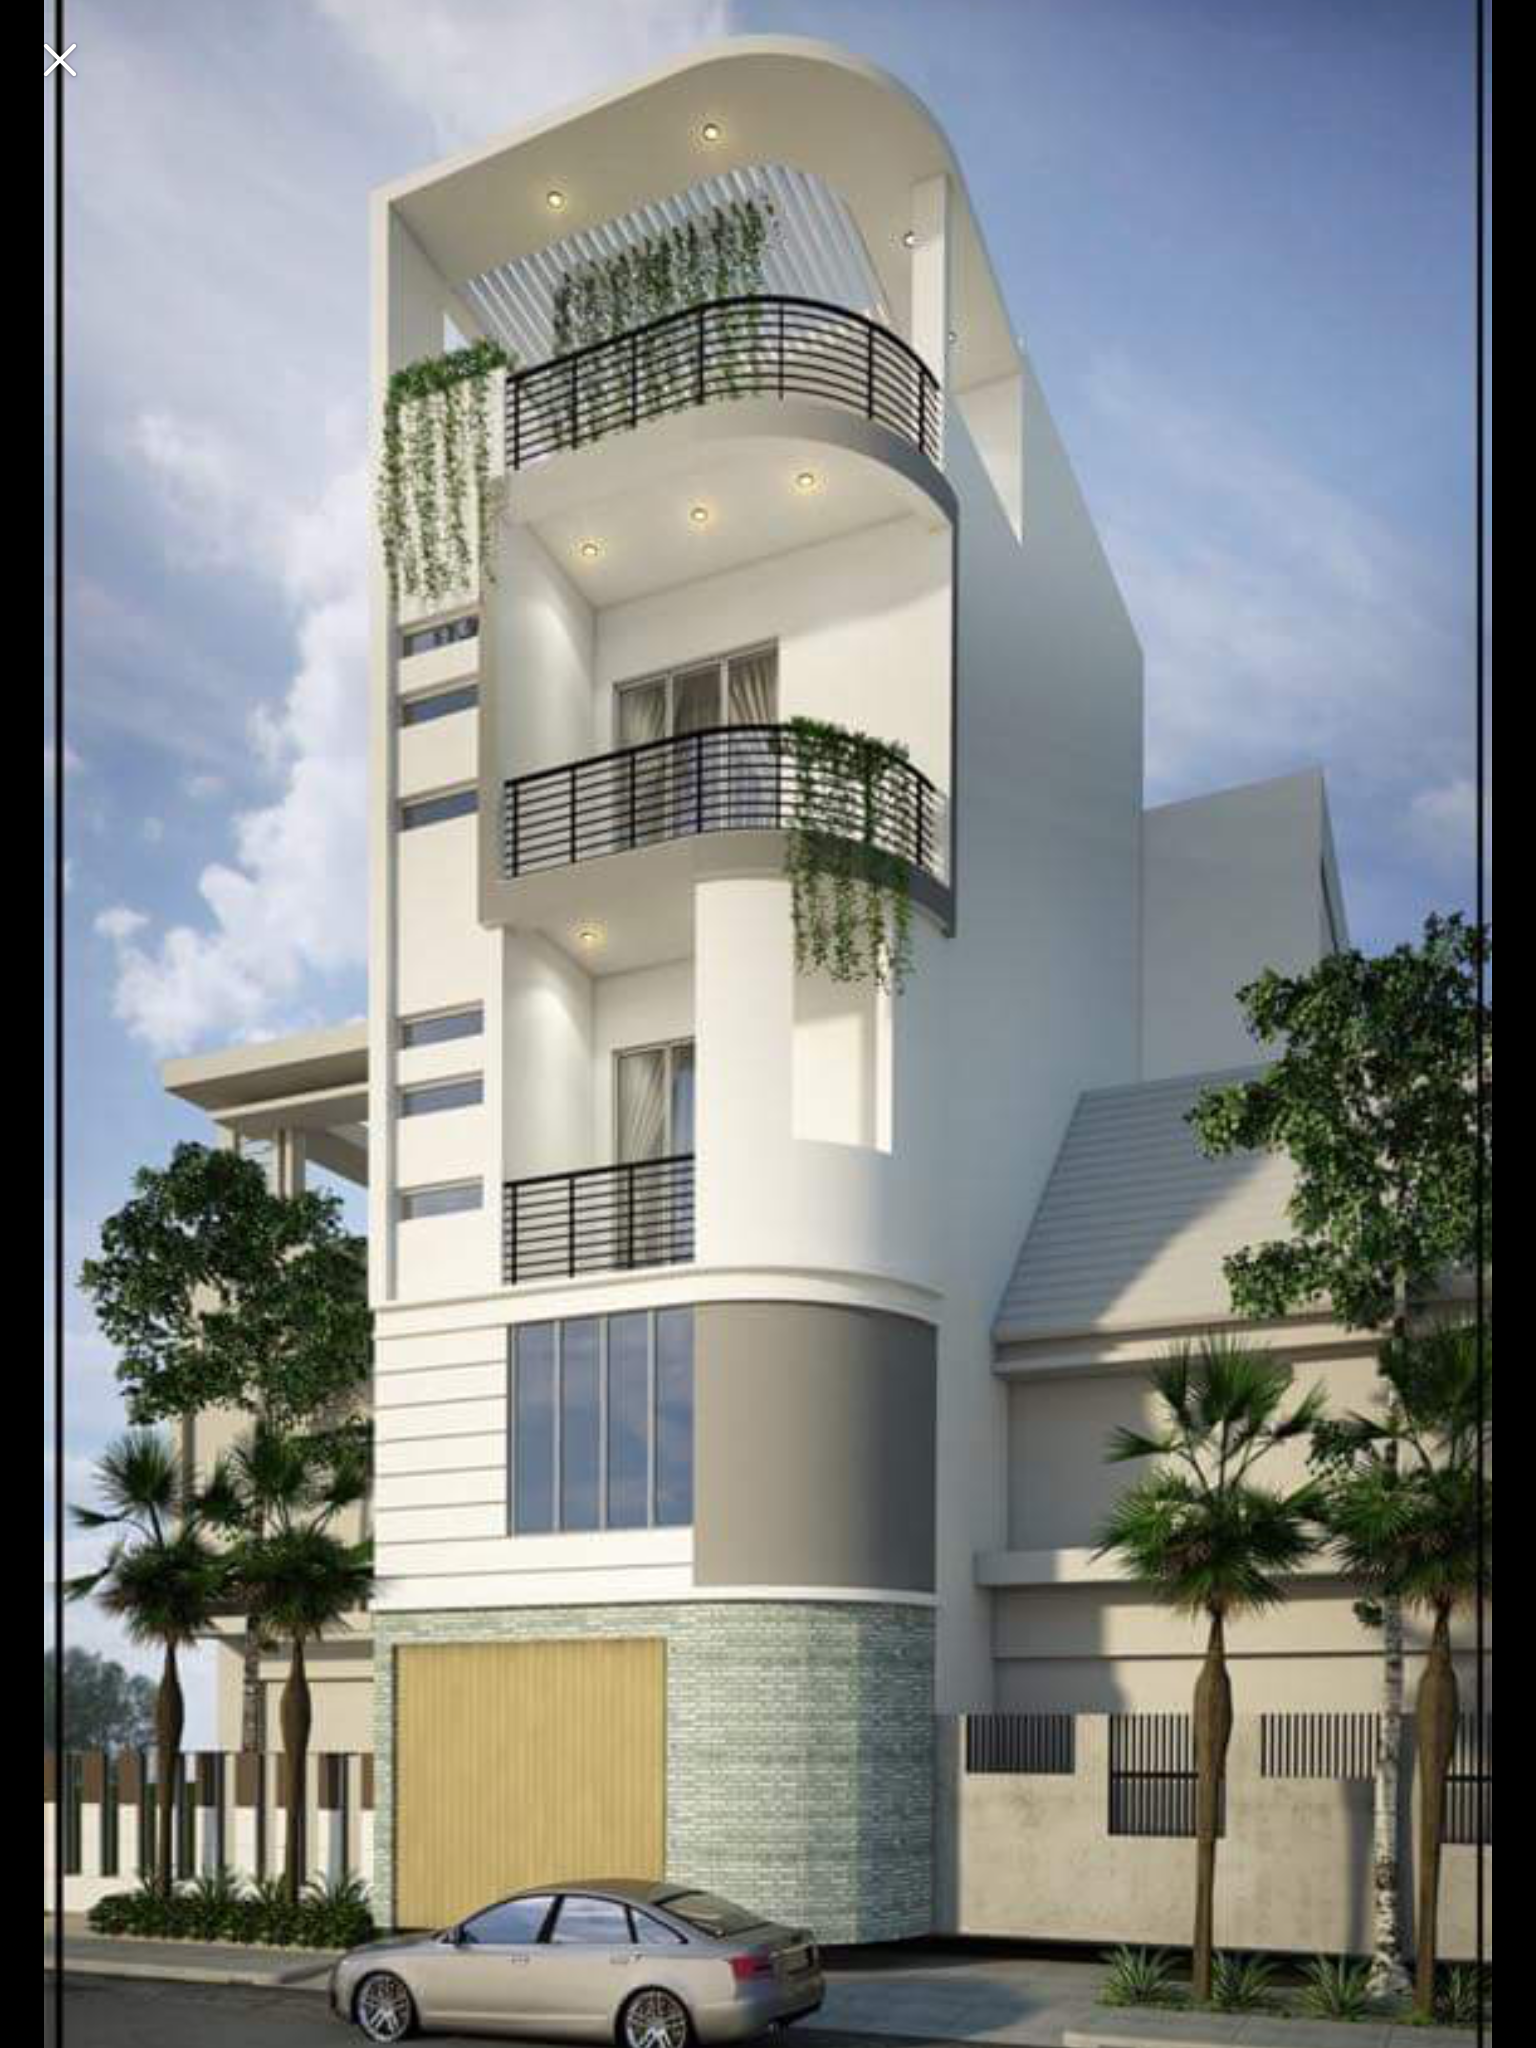 49 Most Popular Modern Dream House Exterior Design Ideas 3 In 2020: Brick House Designs, Small House Exteriors, Small House Design Exterior